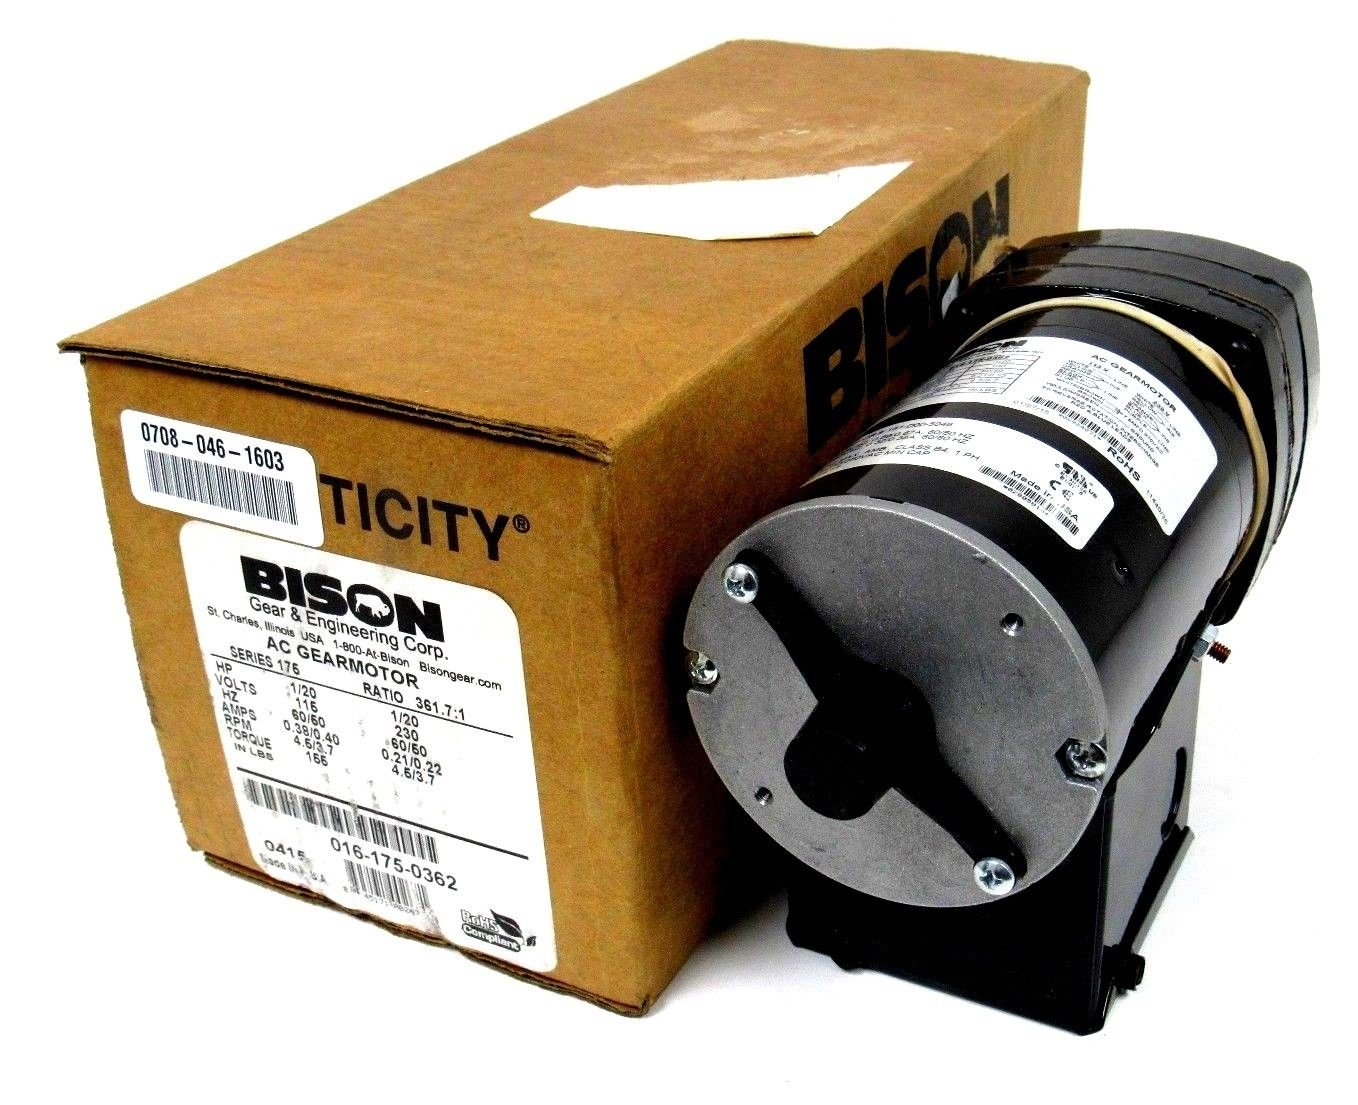 NEW BISON 016-175-0362 AC GEARMOTOR 0161750362 SERIES 175 RATIO 361.7:1